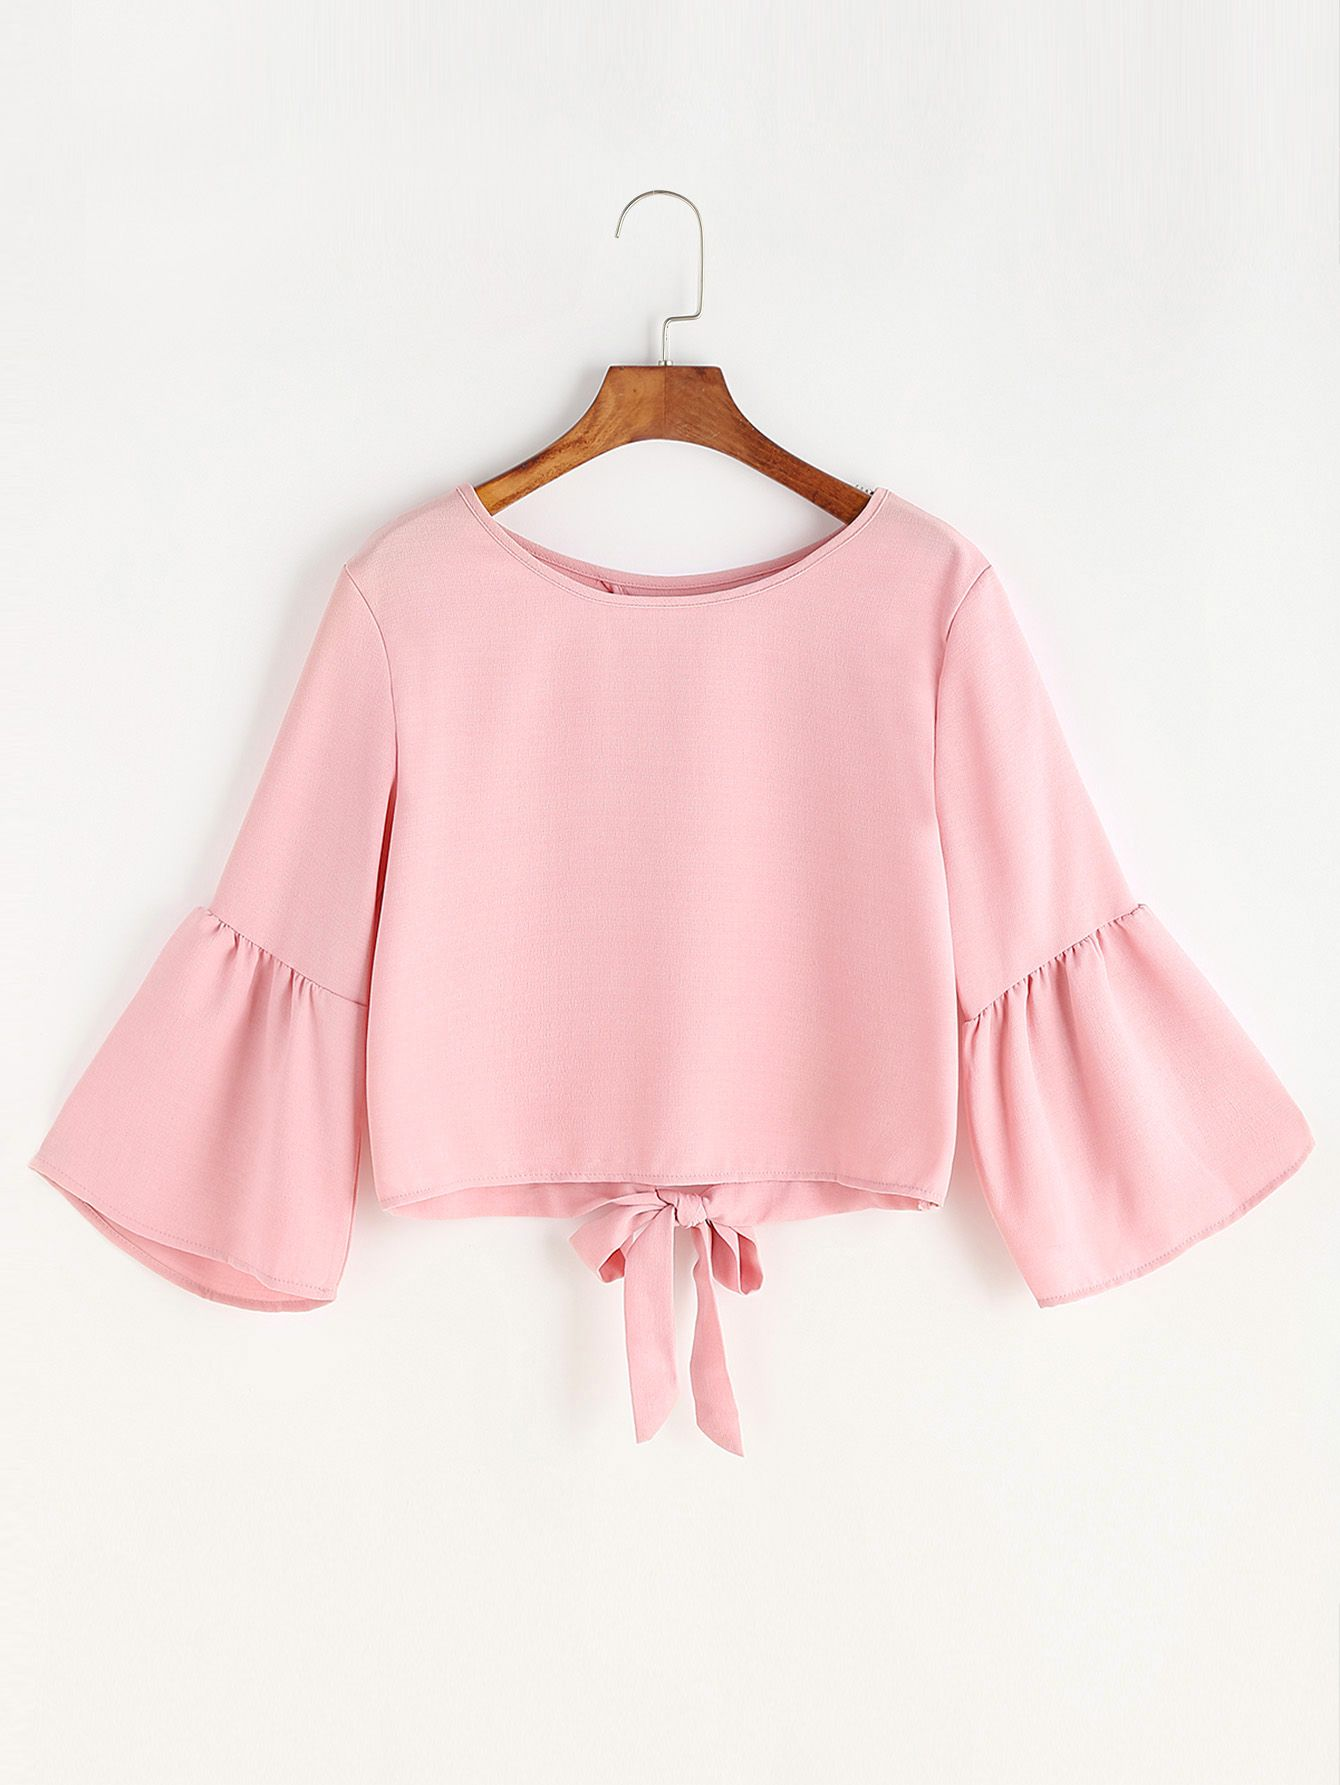 Shop Fluted Sleeve Bow Tie Overlap Back Blouse Online Shein Offers Fluted Sleeve Bow Tie Overlap Back Blouse More To F Ropa De Moda Moda De Ropa Ropa Tumblr